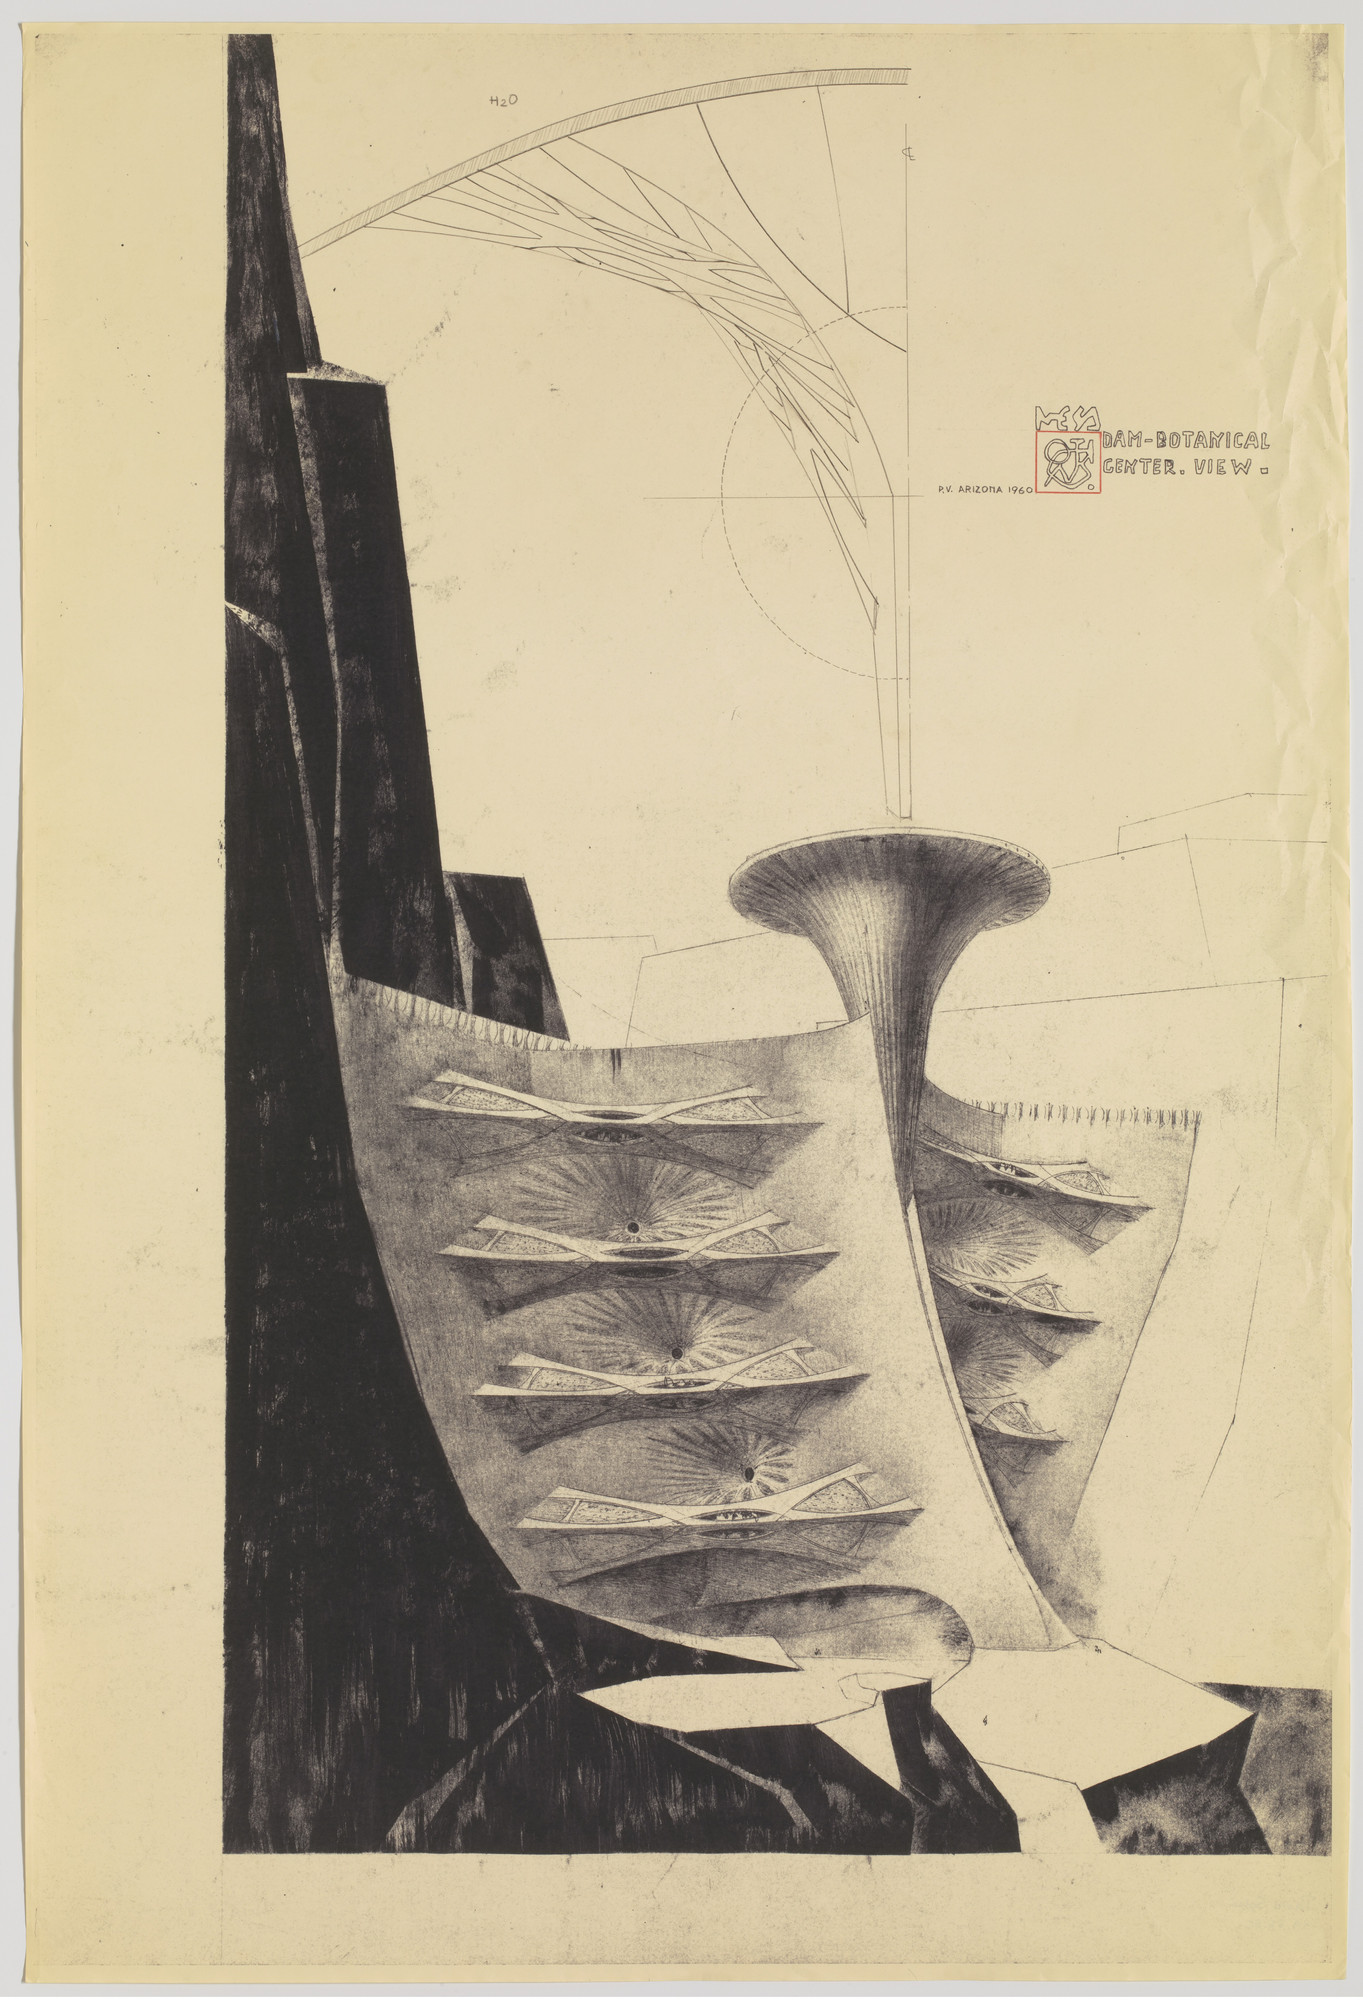 Paolo Soleri. Dam–Botanical Center Project (Perspective). c.1960